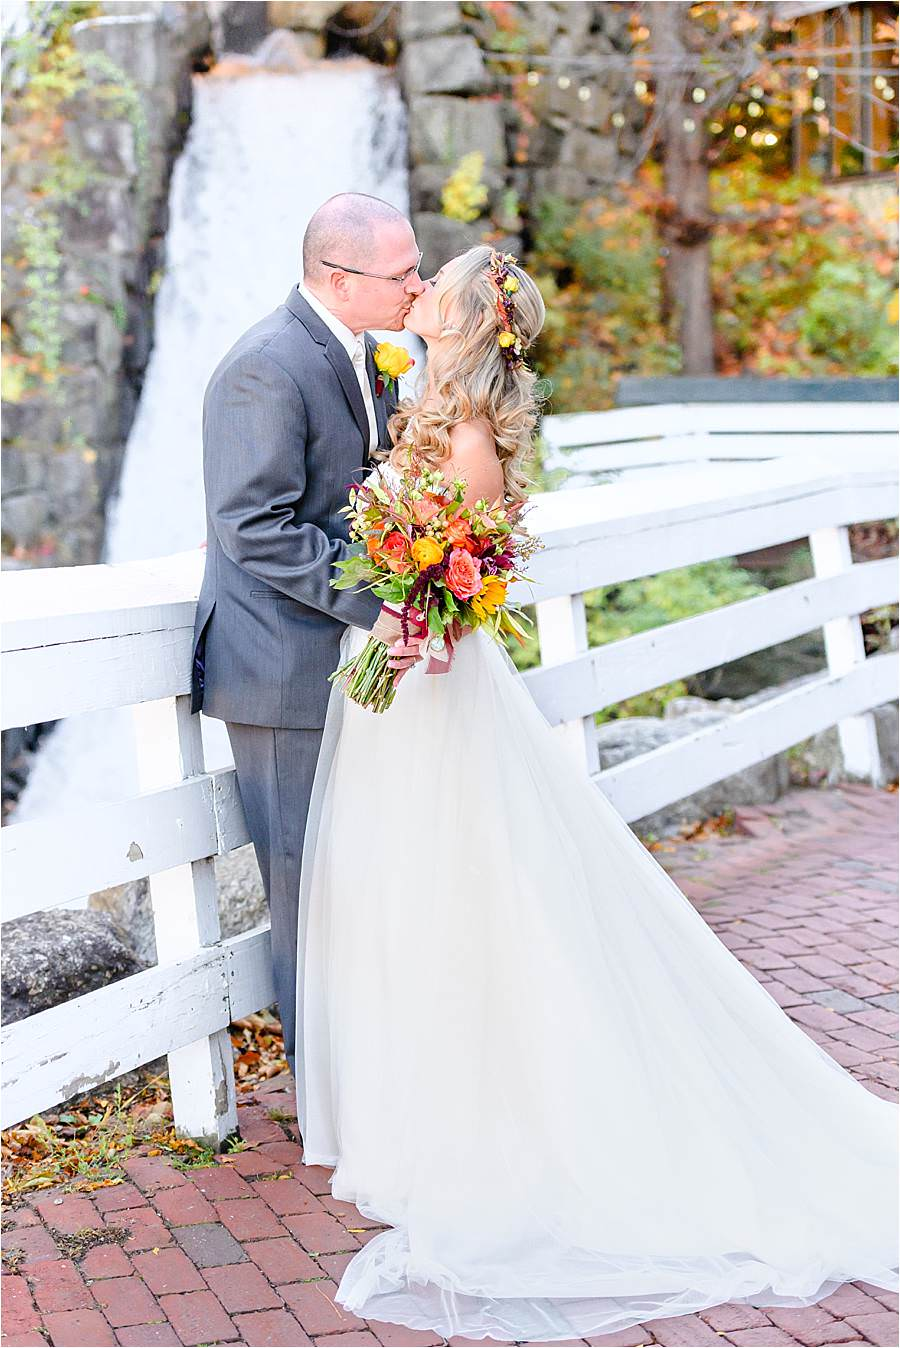 Chase House at Mill Falls wedding, , , Chase House at Mill Falls Wedding | Meredith NH Wedding Photographer, Boston Fine Art Wedding Photographer - Qian Hegarty Photography